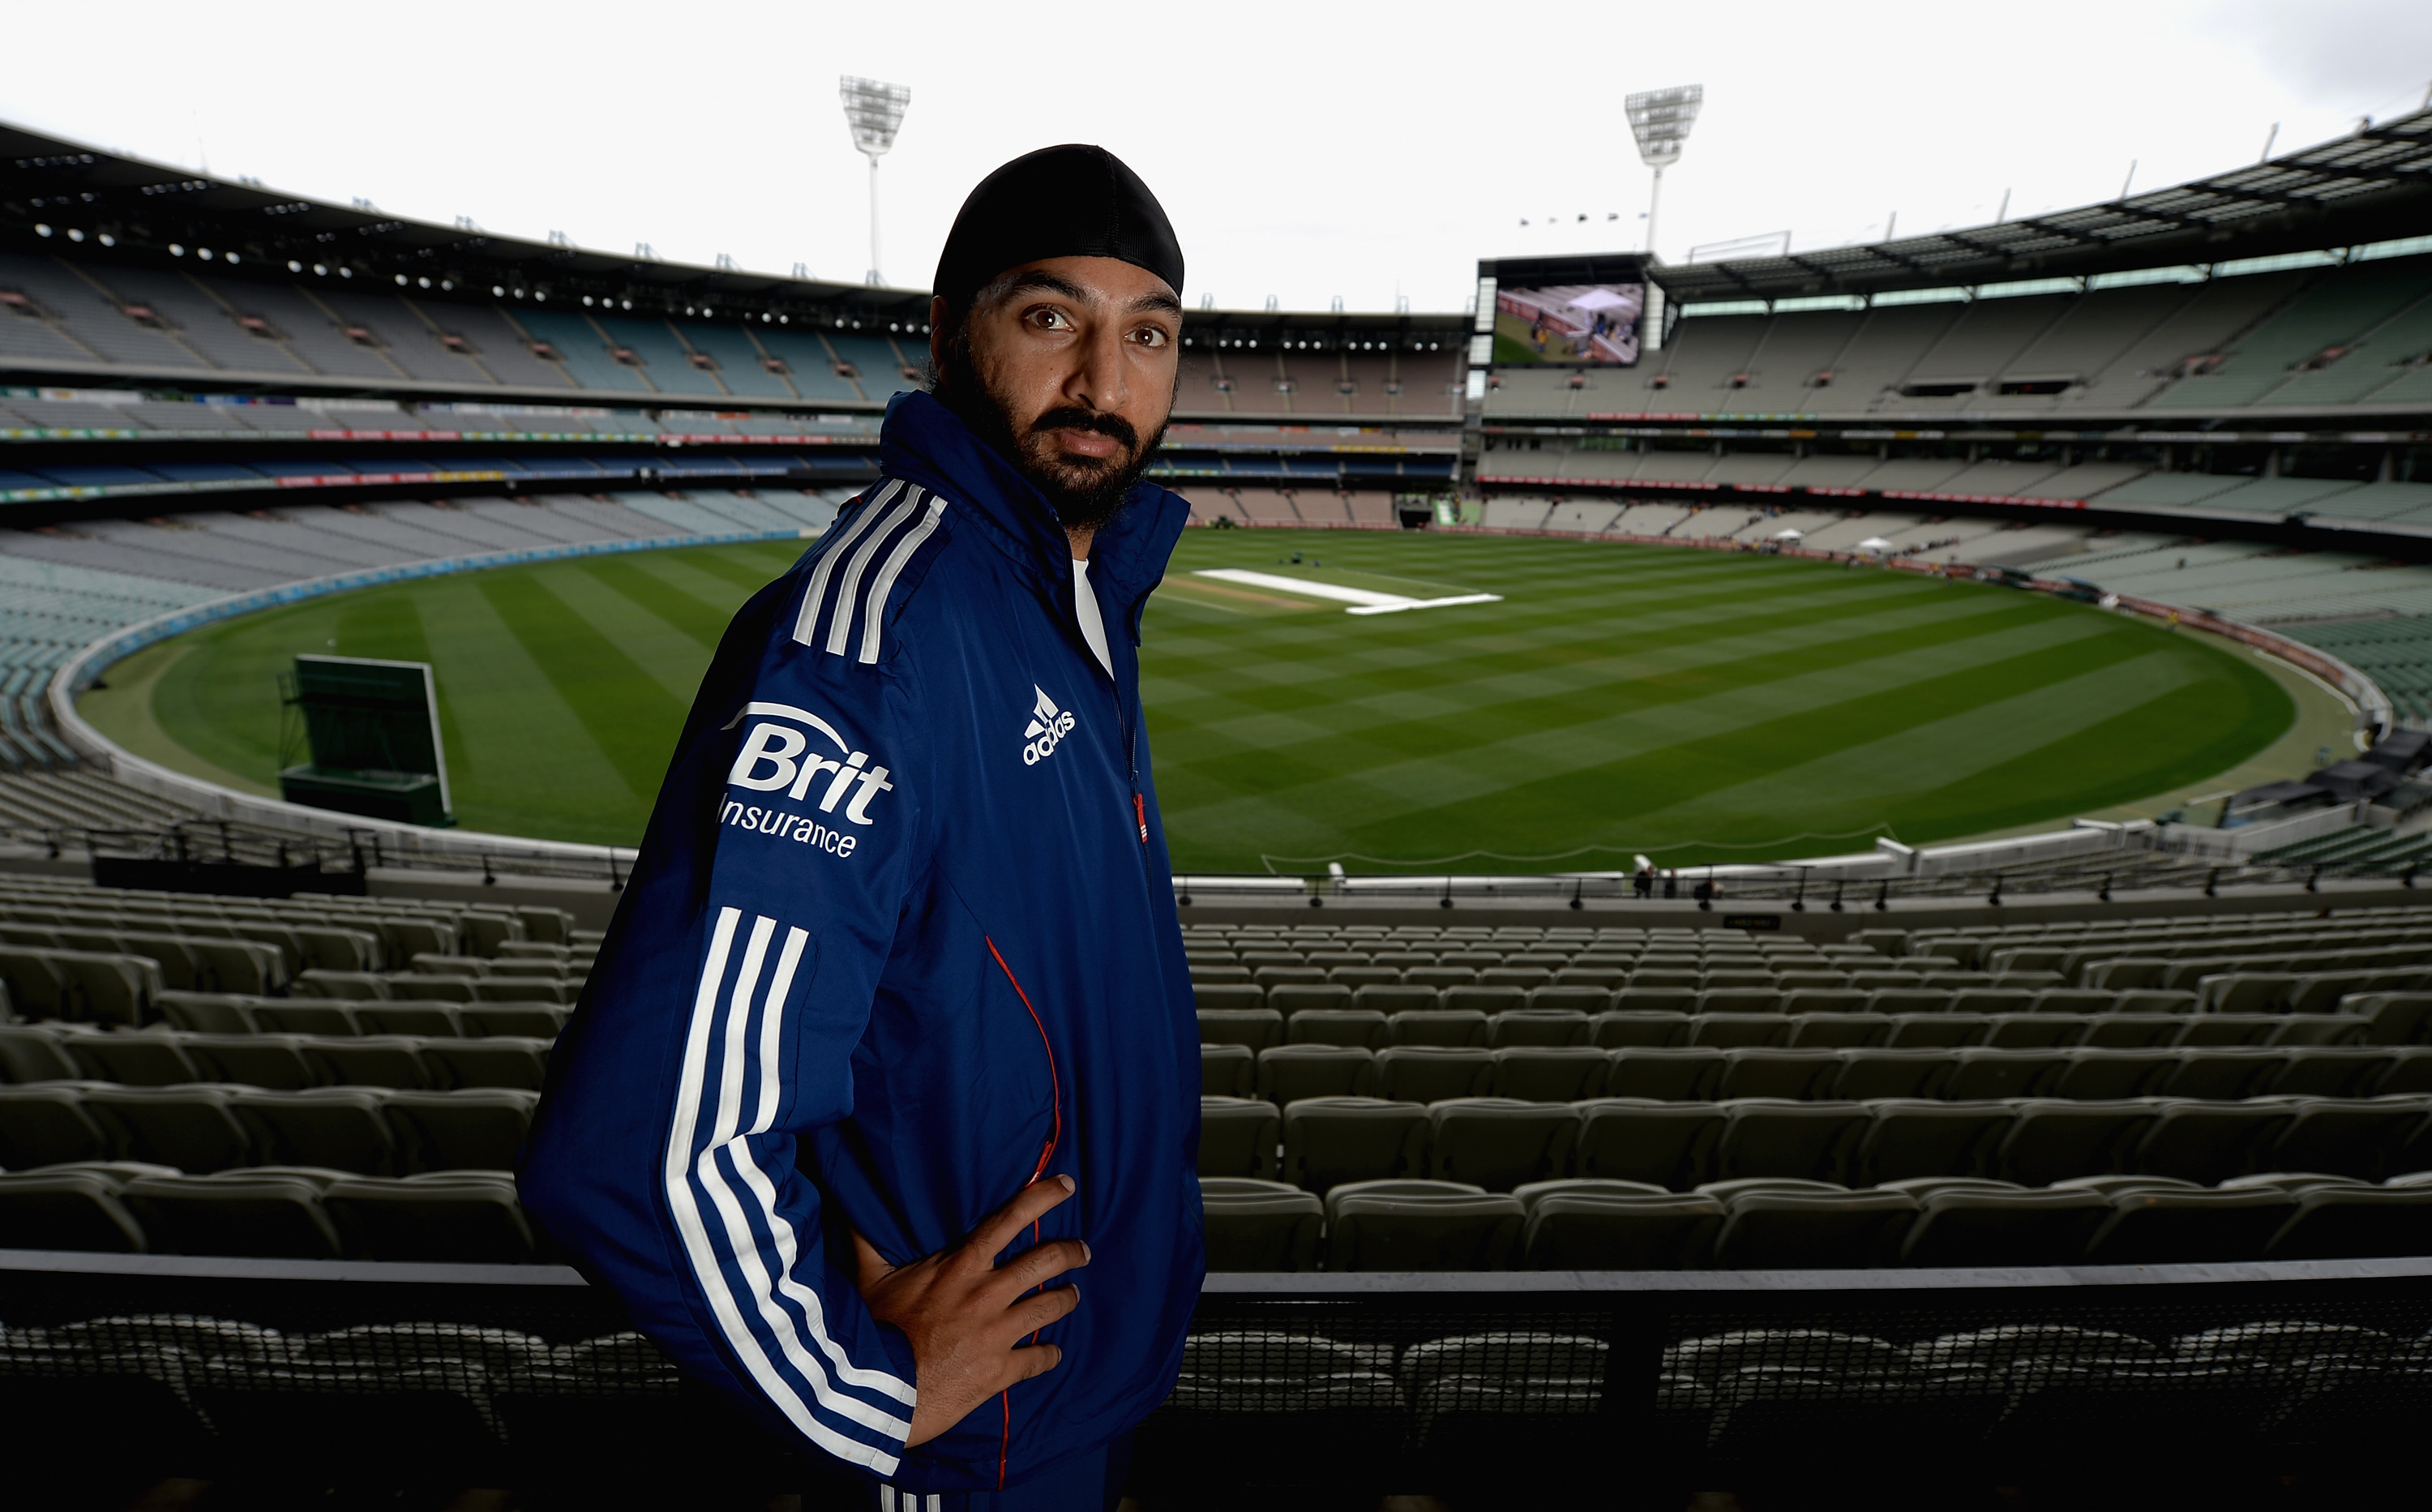 Monty Panesar (Photo by Gareth Copley/Getty Images)